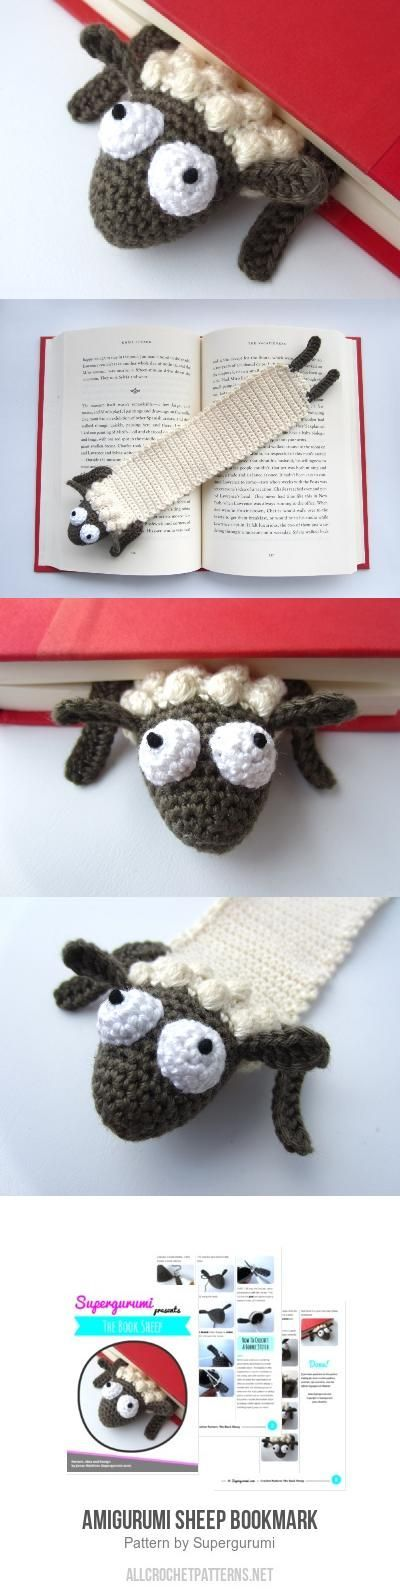 Amigurumi Sheep Bookmark crochet pattern